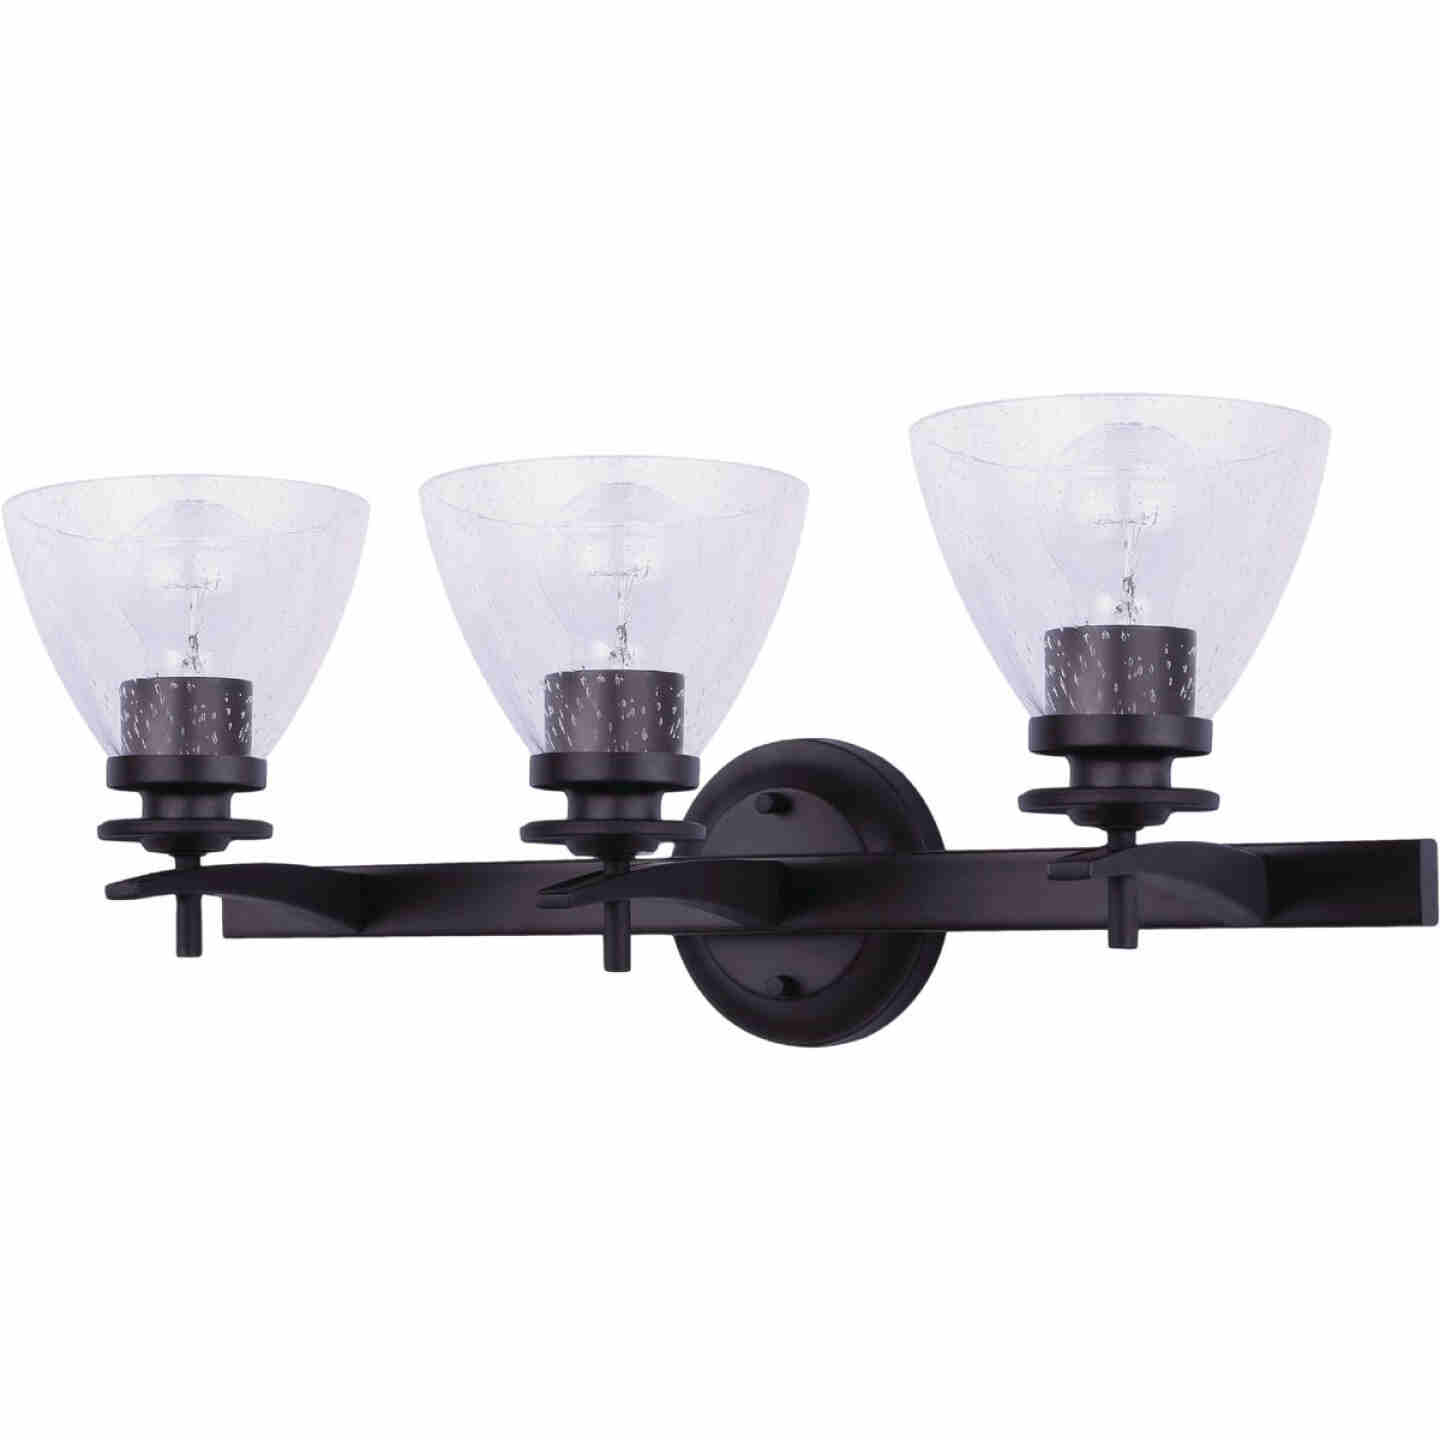 Home Impressions 3-Bulb Oil Rubbed Bronze Vanity Bath Light Fixture, Seeded Glass Image 1